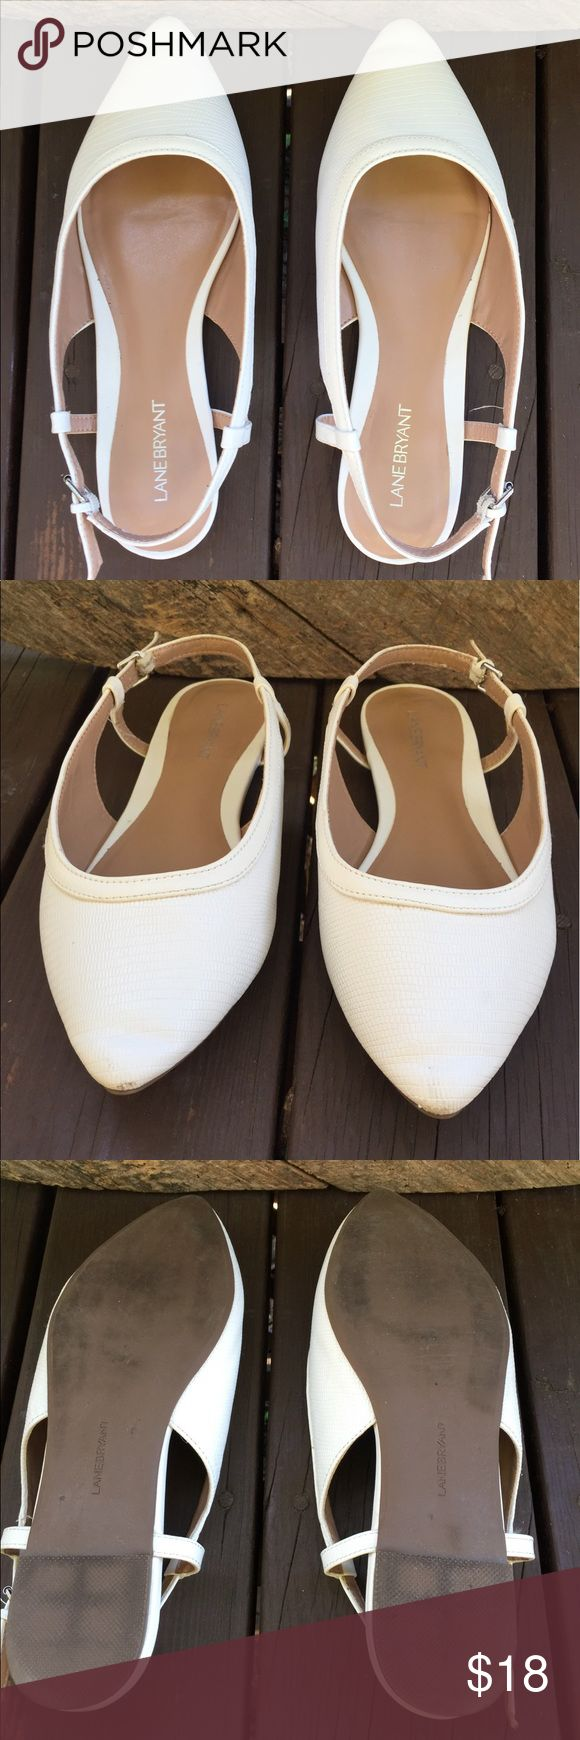 Lane Bryant white slip on shoes size 10W. Lane Bryant white slip on shoes size 10W. This is a great pair of wide dress shoes. They have adjustable straps on the back. They do show some minor scuffs to the toes but overall good shape. Please view all pictures. Lane Bryant Shoes Slippers